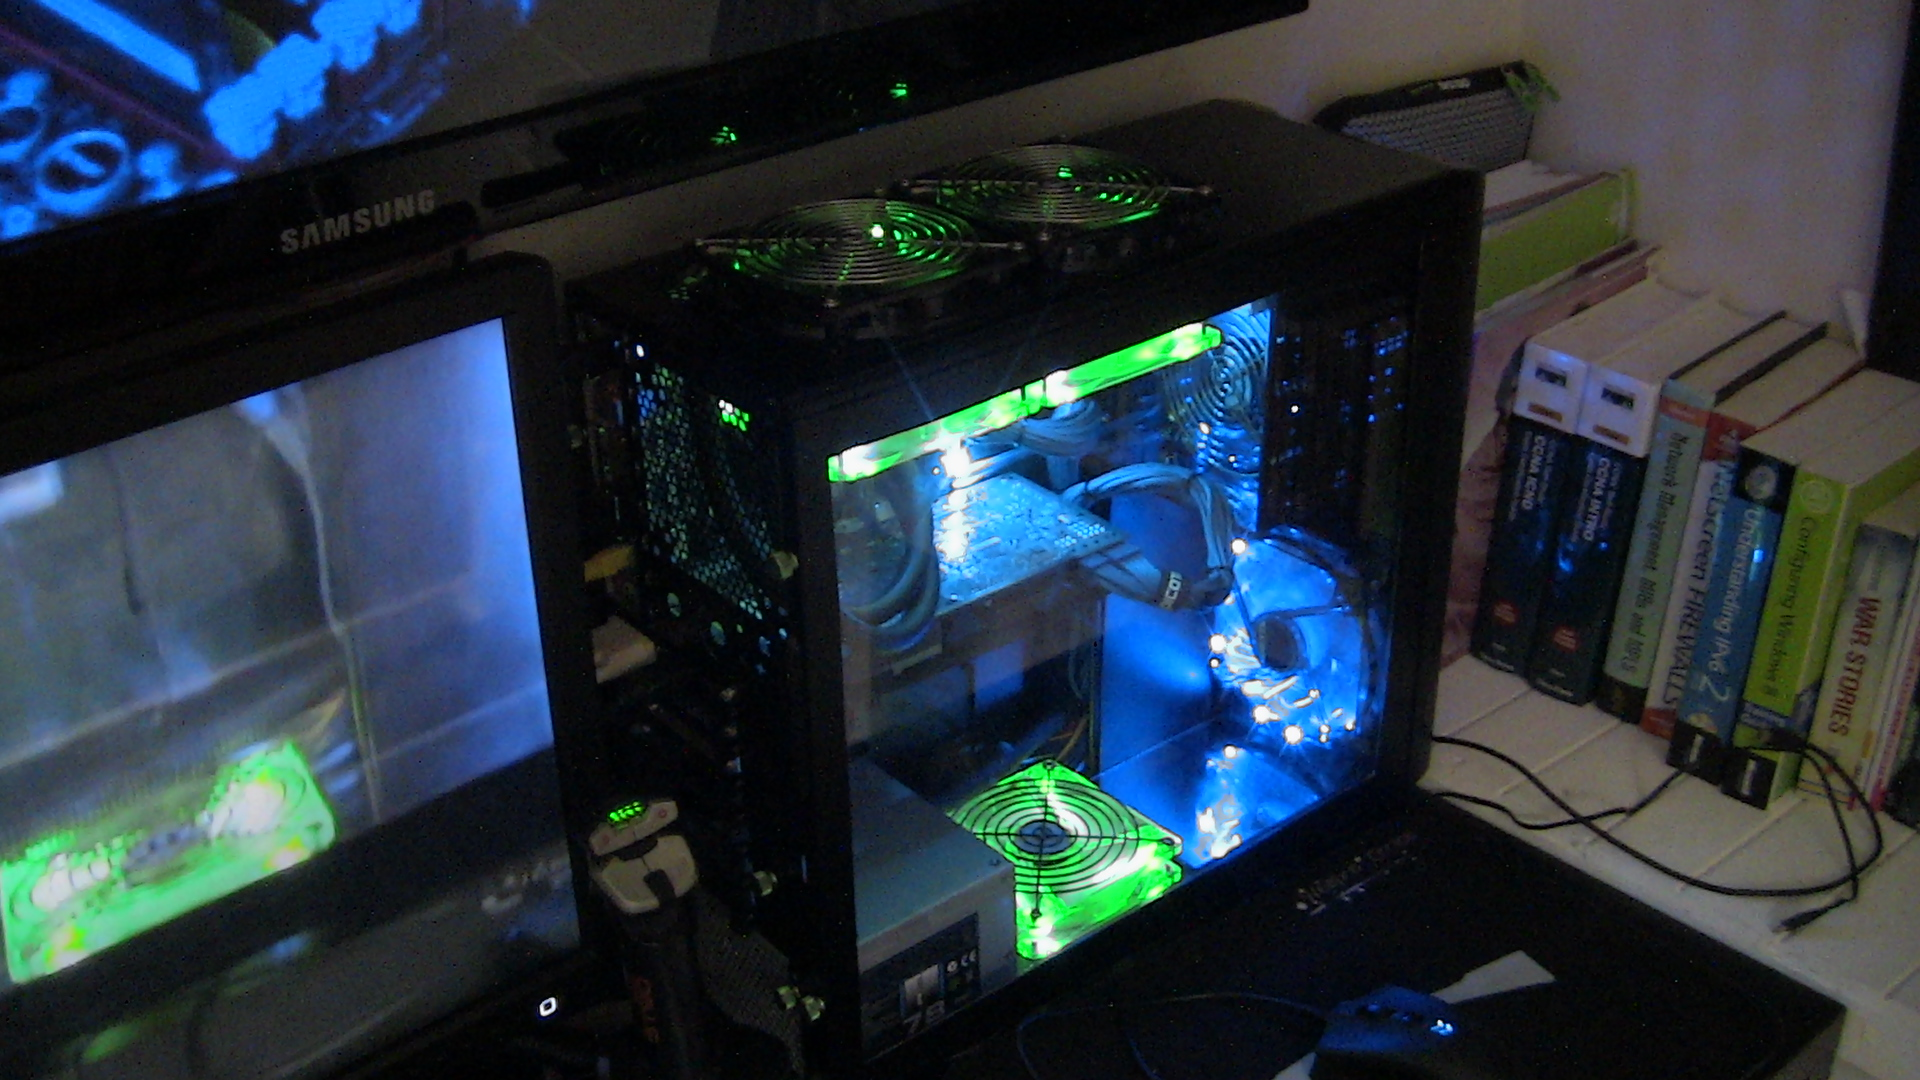 my case mod,gigabyte h77m,670 o.c. gtx,3770k,h100i watercooling,and the rest